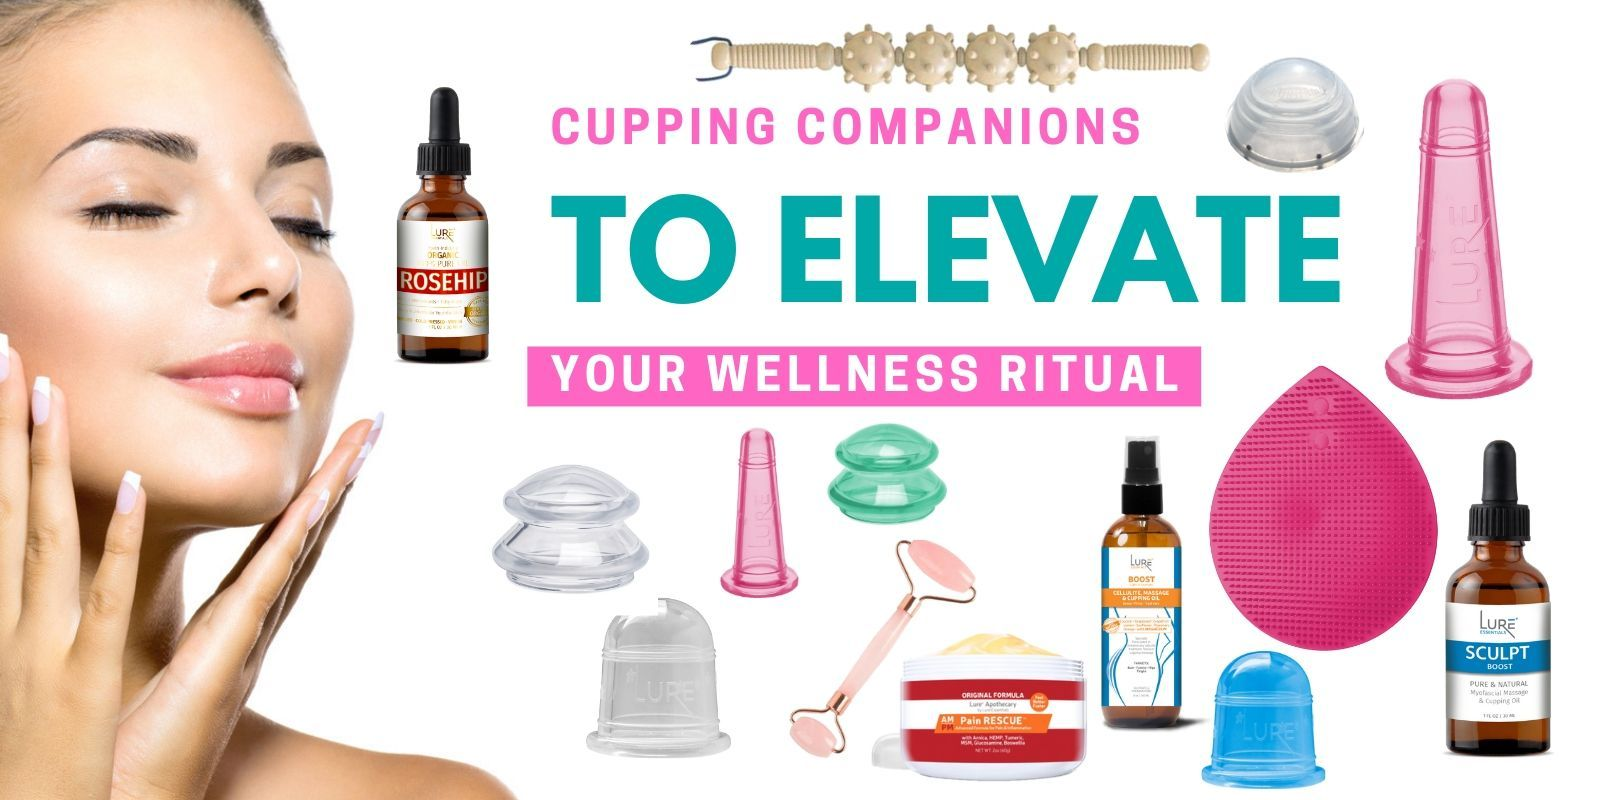 Cupping Companions to Elevate Your Wellness Ritual - Lure Essentials